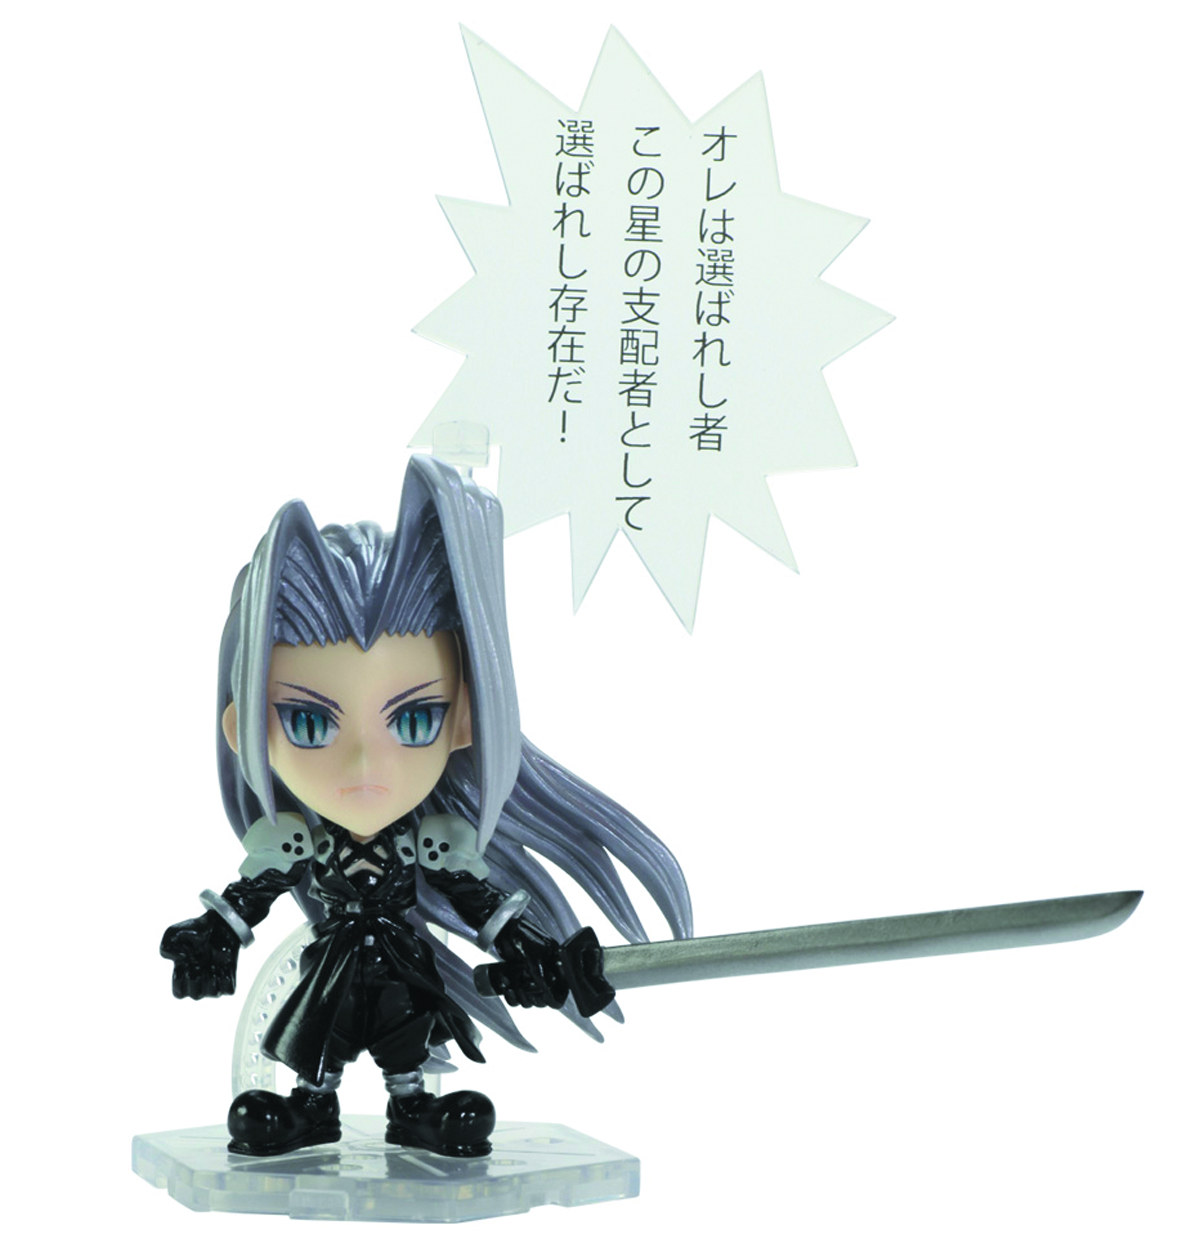 FF TRADING ARTS KAI MINI SEPHIROTH FIG